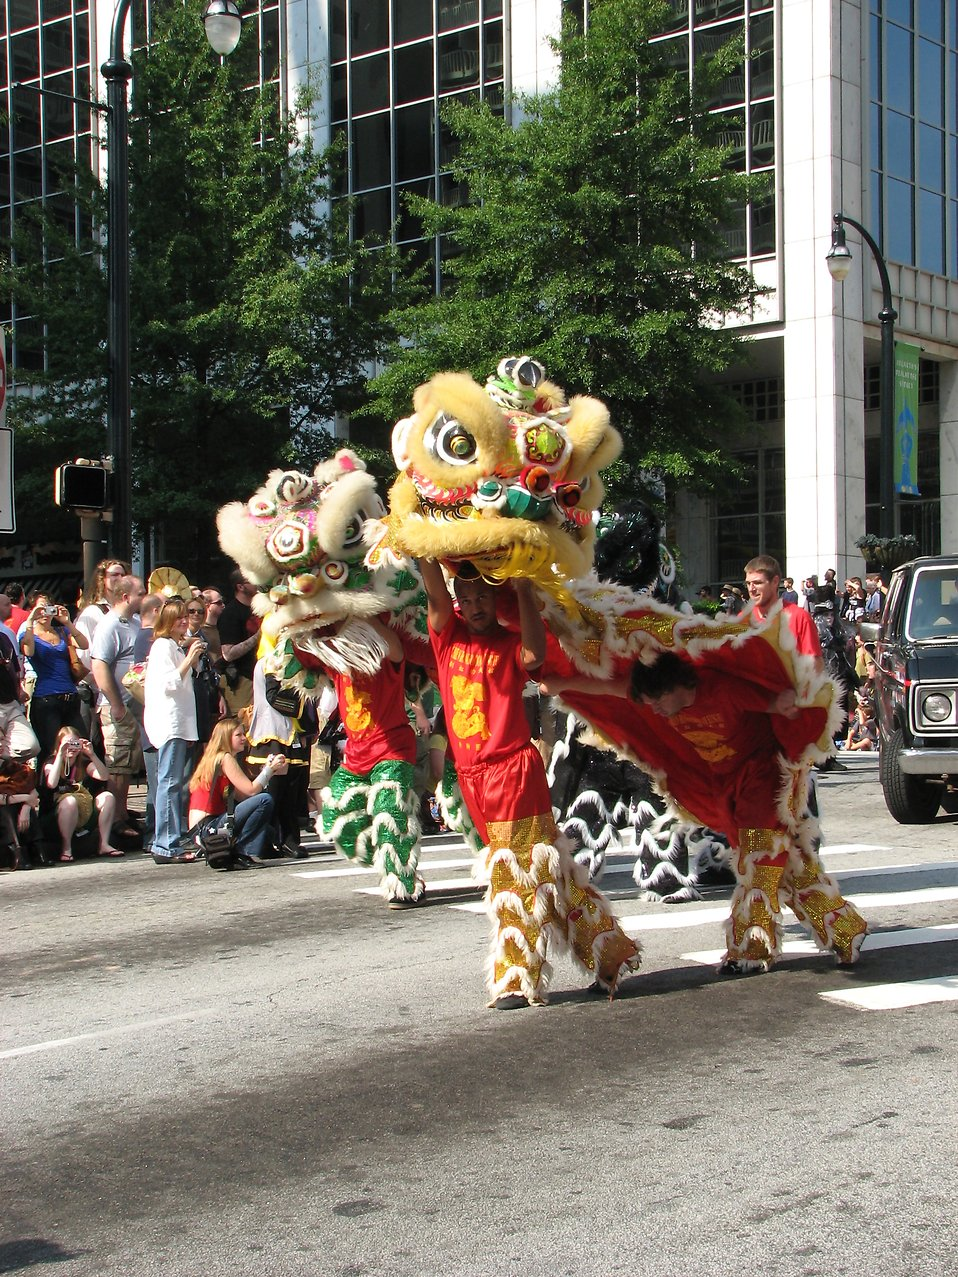 Chinese dragons at the Dragoncon 2008 parade : Free Stock Photo